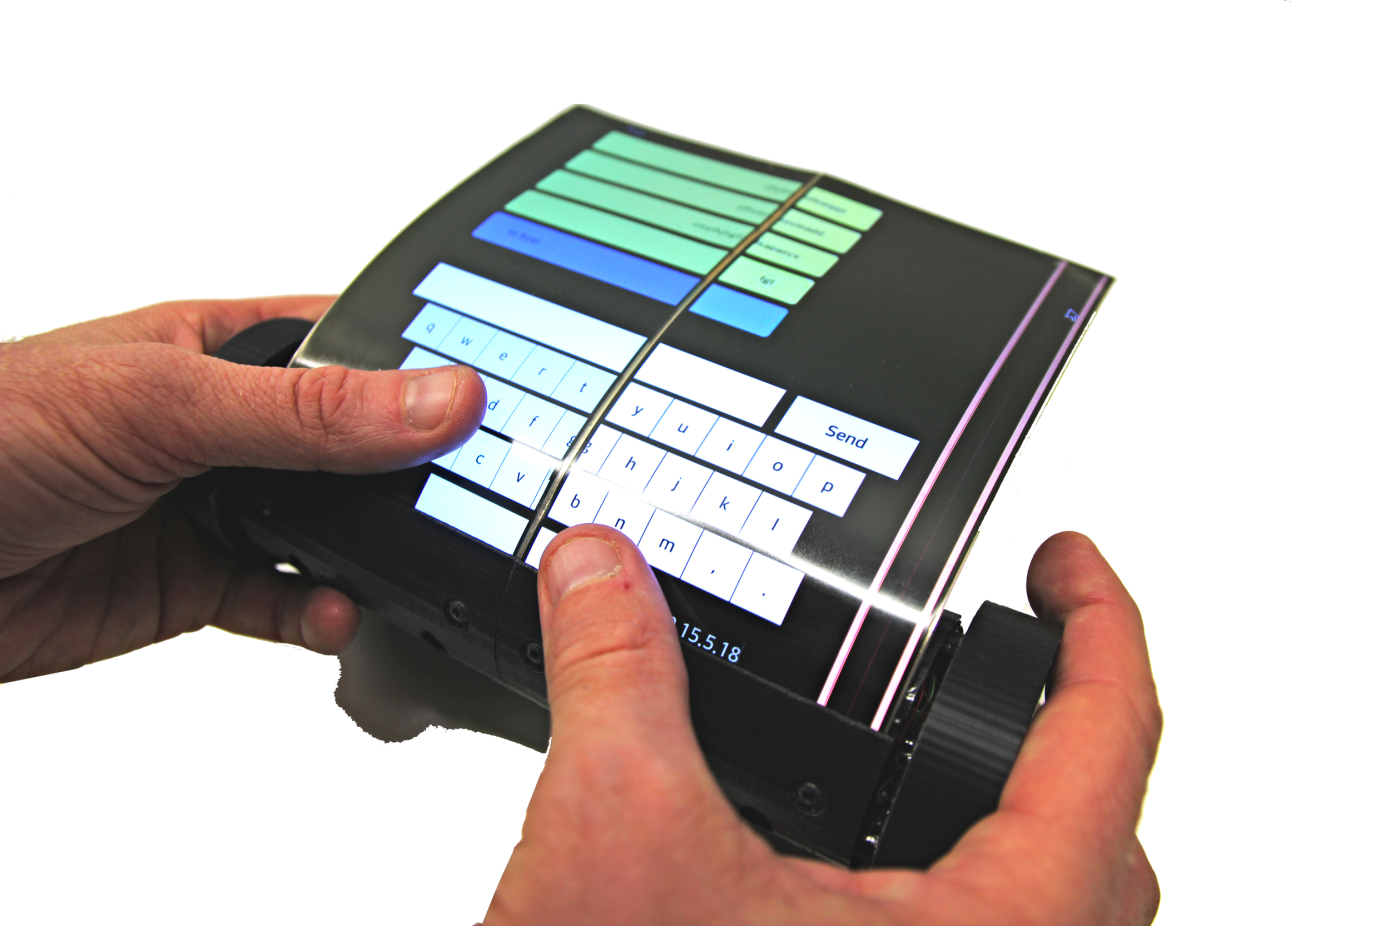 Created multi-touch tablet that you can twist the scroll